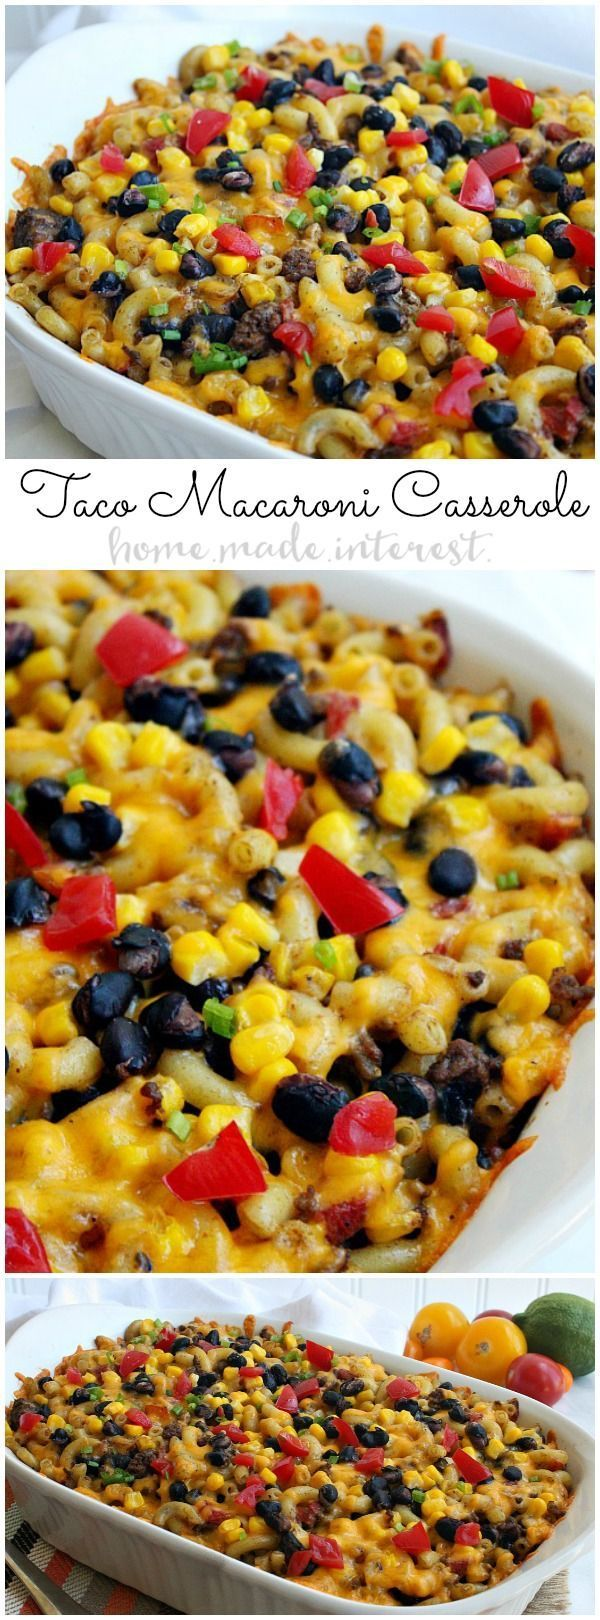 This taco macaroni casserole is an easy taco bake recipe that makes a great weeknight dinner. Full of all of your favorite tex-mex flavors this is a casserole recipe that puts a fun spin on taco night! #FusionClean AD